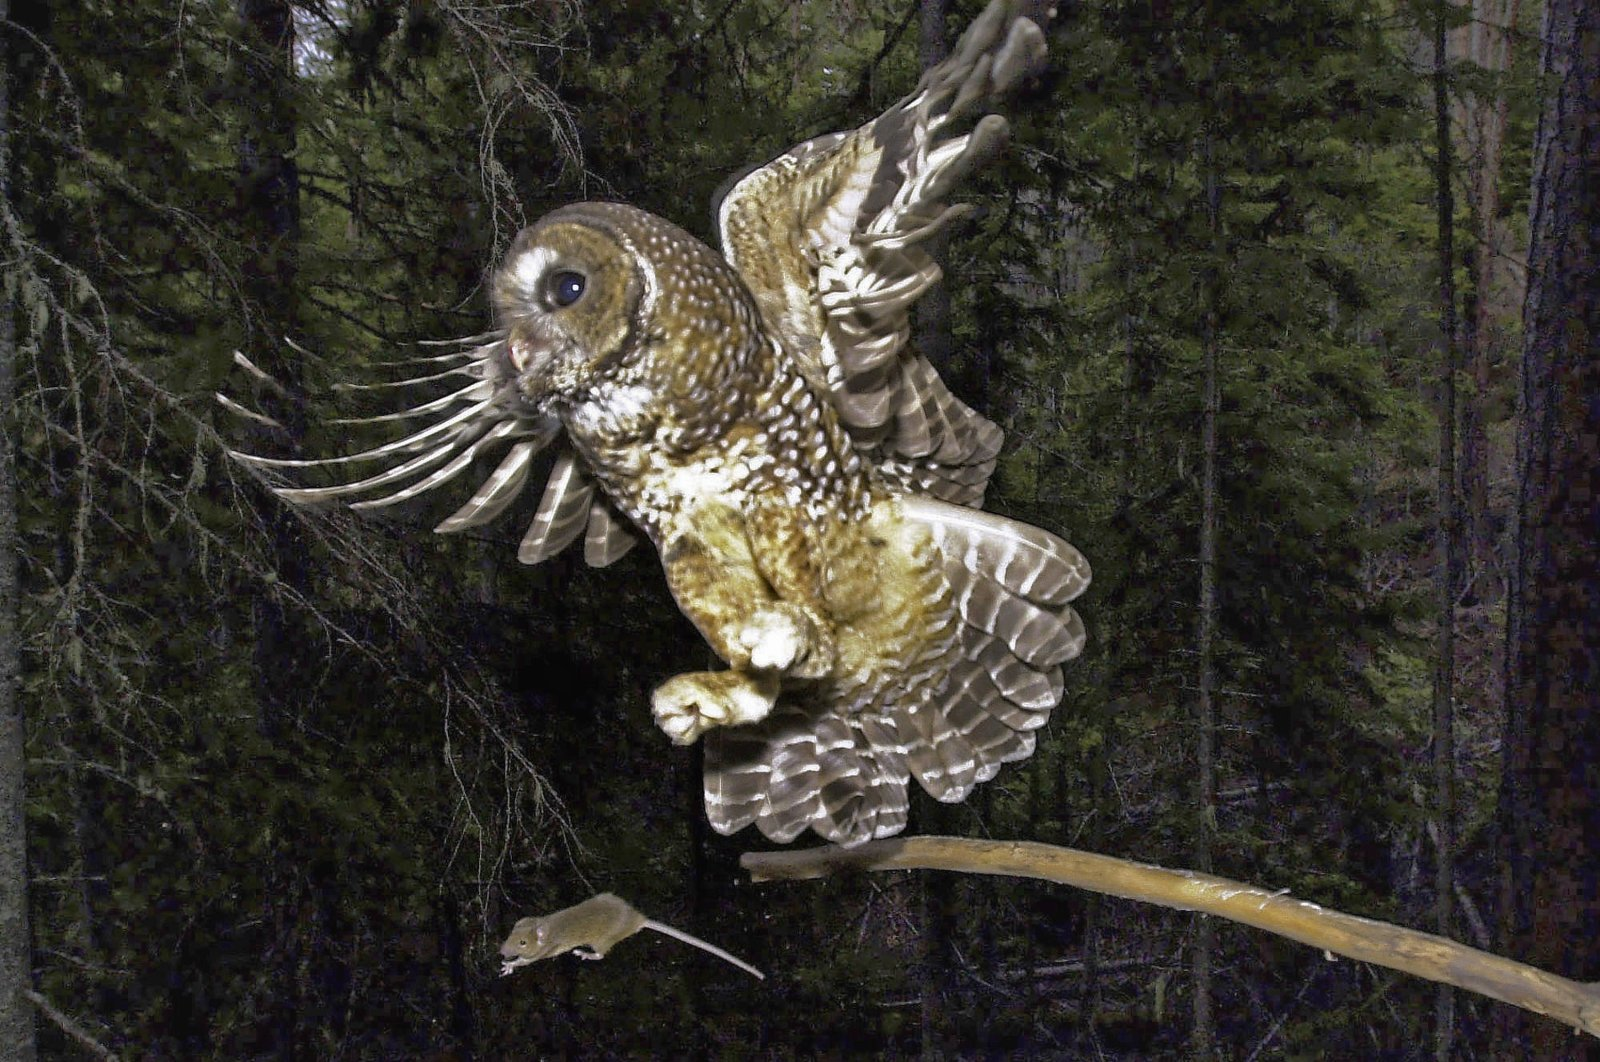 In this file photo, a northern spotted owl flies after an elusive mouse jumping off the end of a stick in the Deschutes National Forest near Camp Sherman, Ore. U.S., May 8, 2003. (Don Ryan via AP Photo)